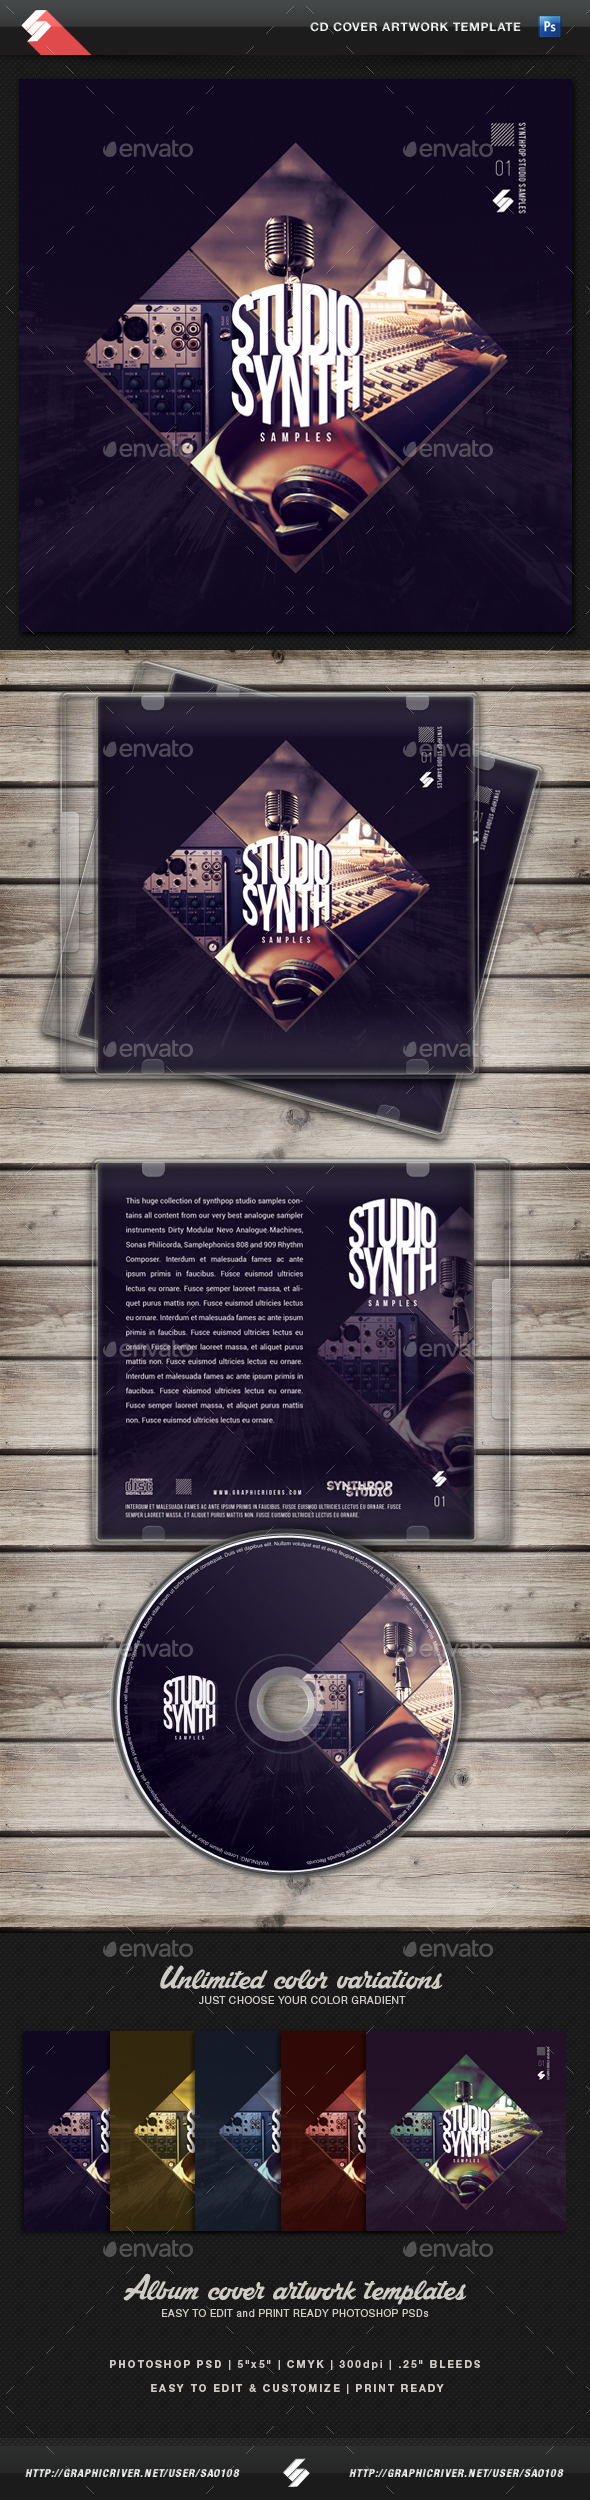 Studio Synth Samples - CD Cover Artwork Template - CD & DVD Artwork Print Templates